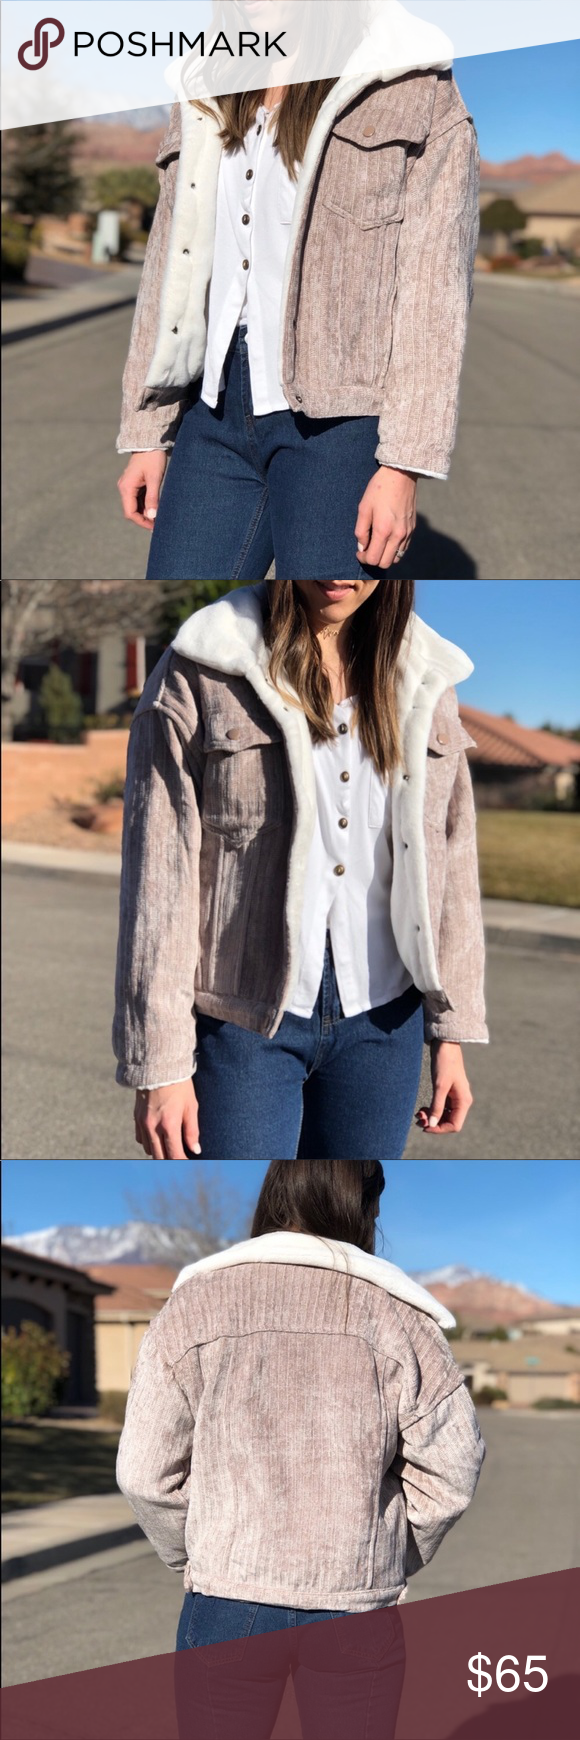 a1aae70c4e3 HOST PICK Chunky Oversized Corduroy Coat The perfect vintage look in a  modern color🤪 sooo soft and extremely warm!! Would be so cute with  virtually any ...